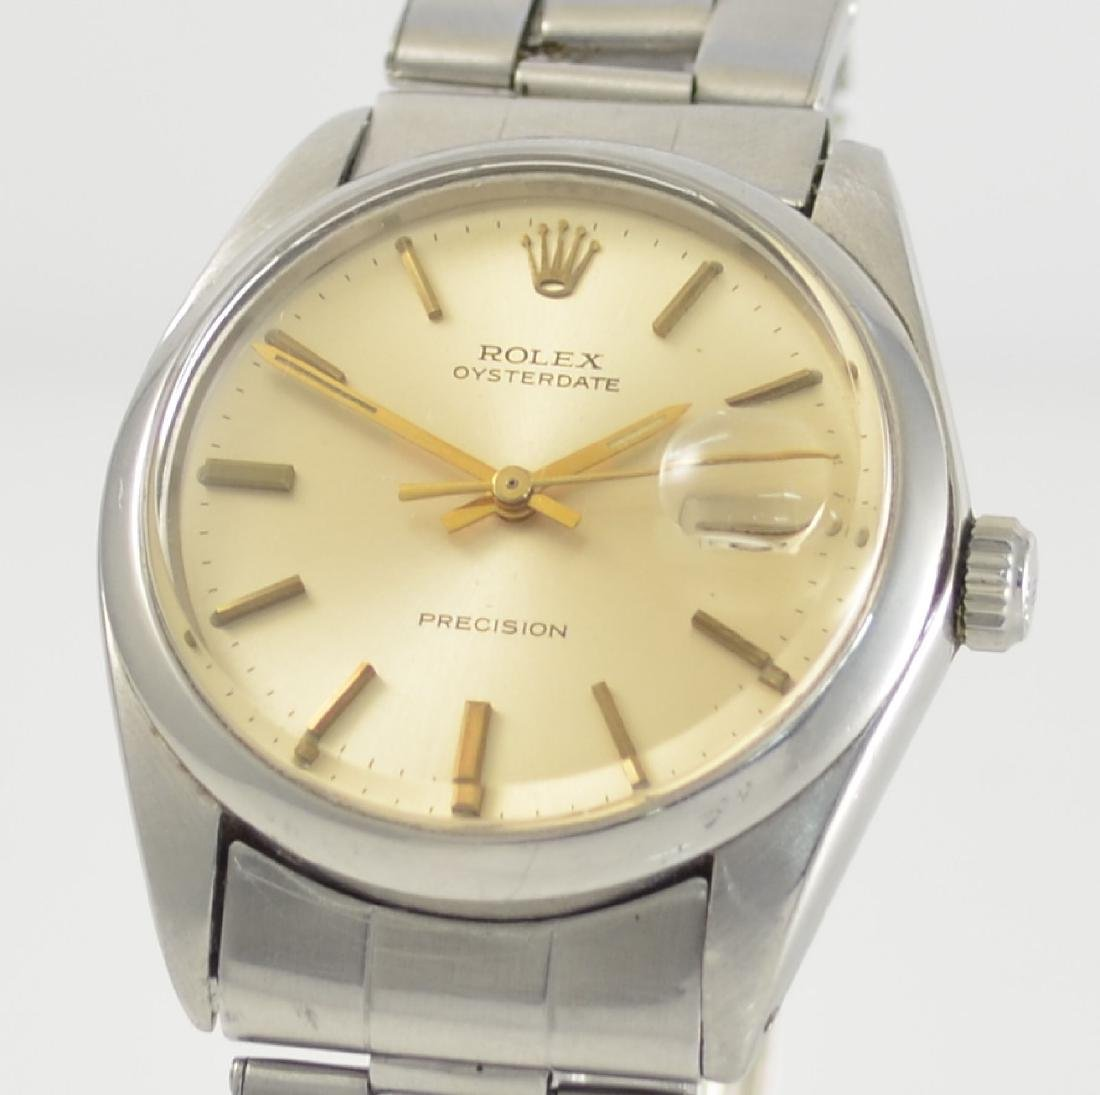 ROLEX Precision reference 6694 gents wristwatch - 5